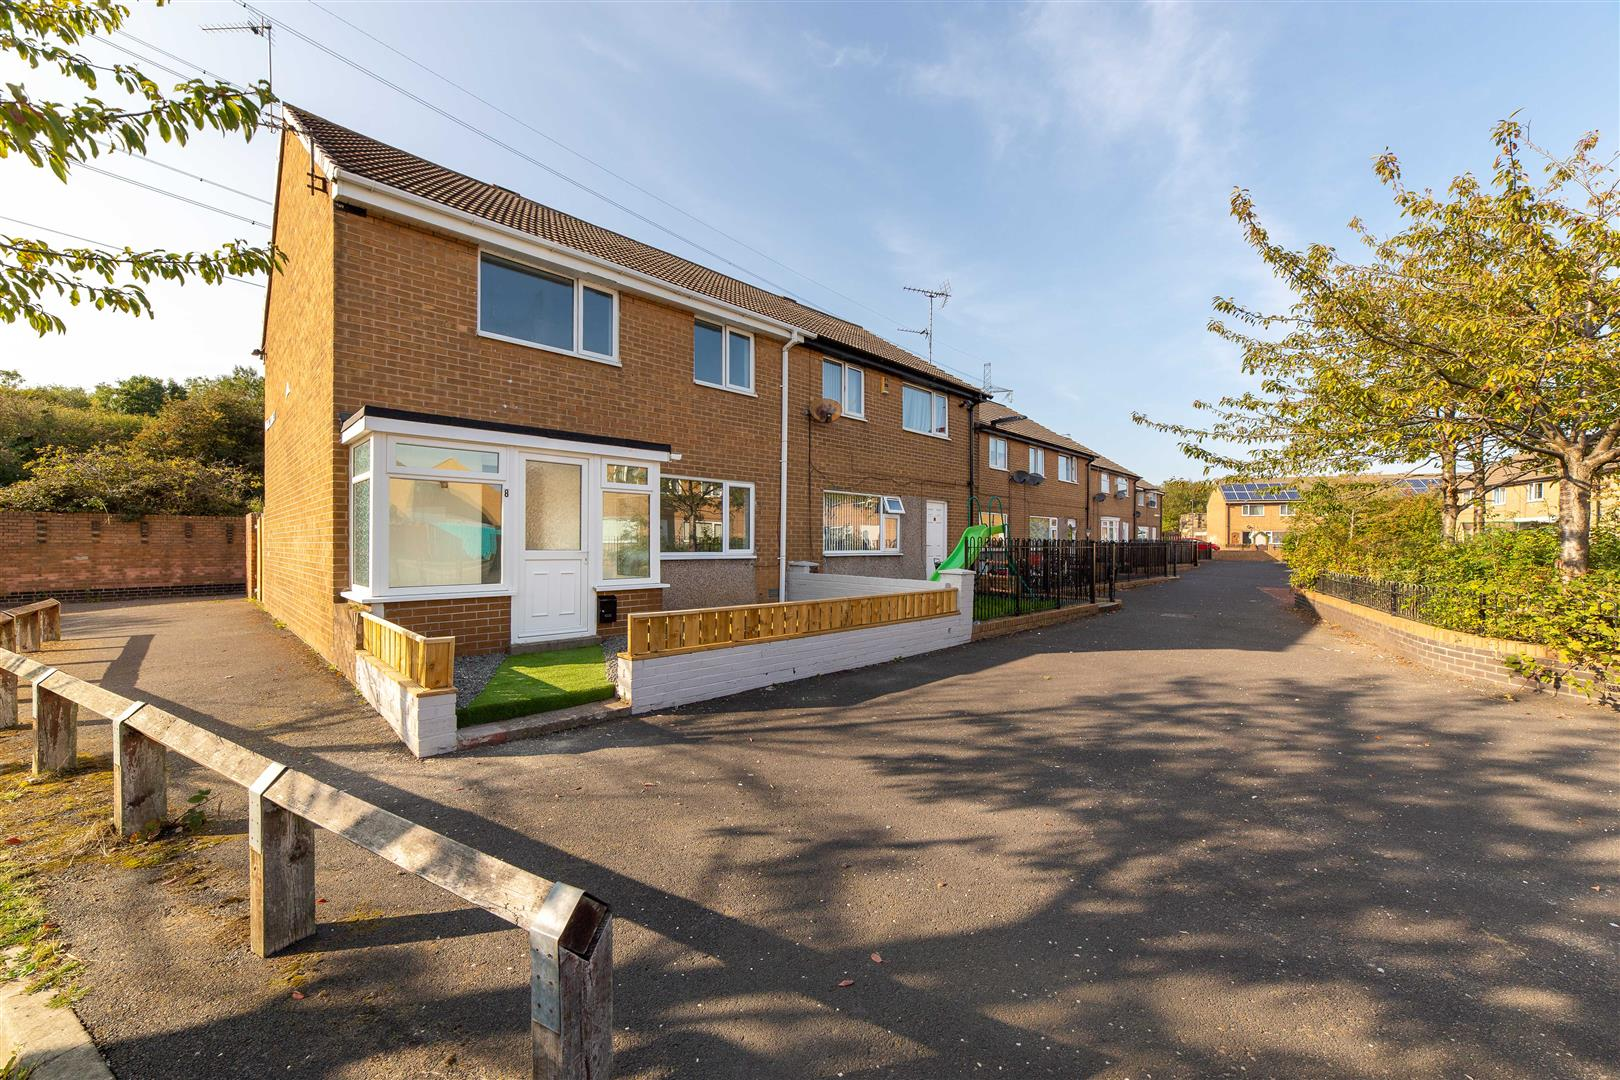 3 bed end of terrace house for sale in North Shields, NE29 6JN - Property Image 1